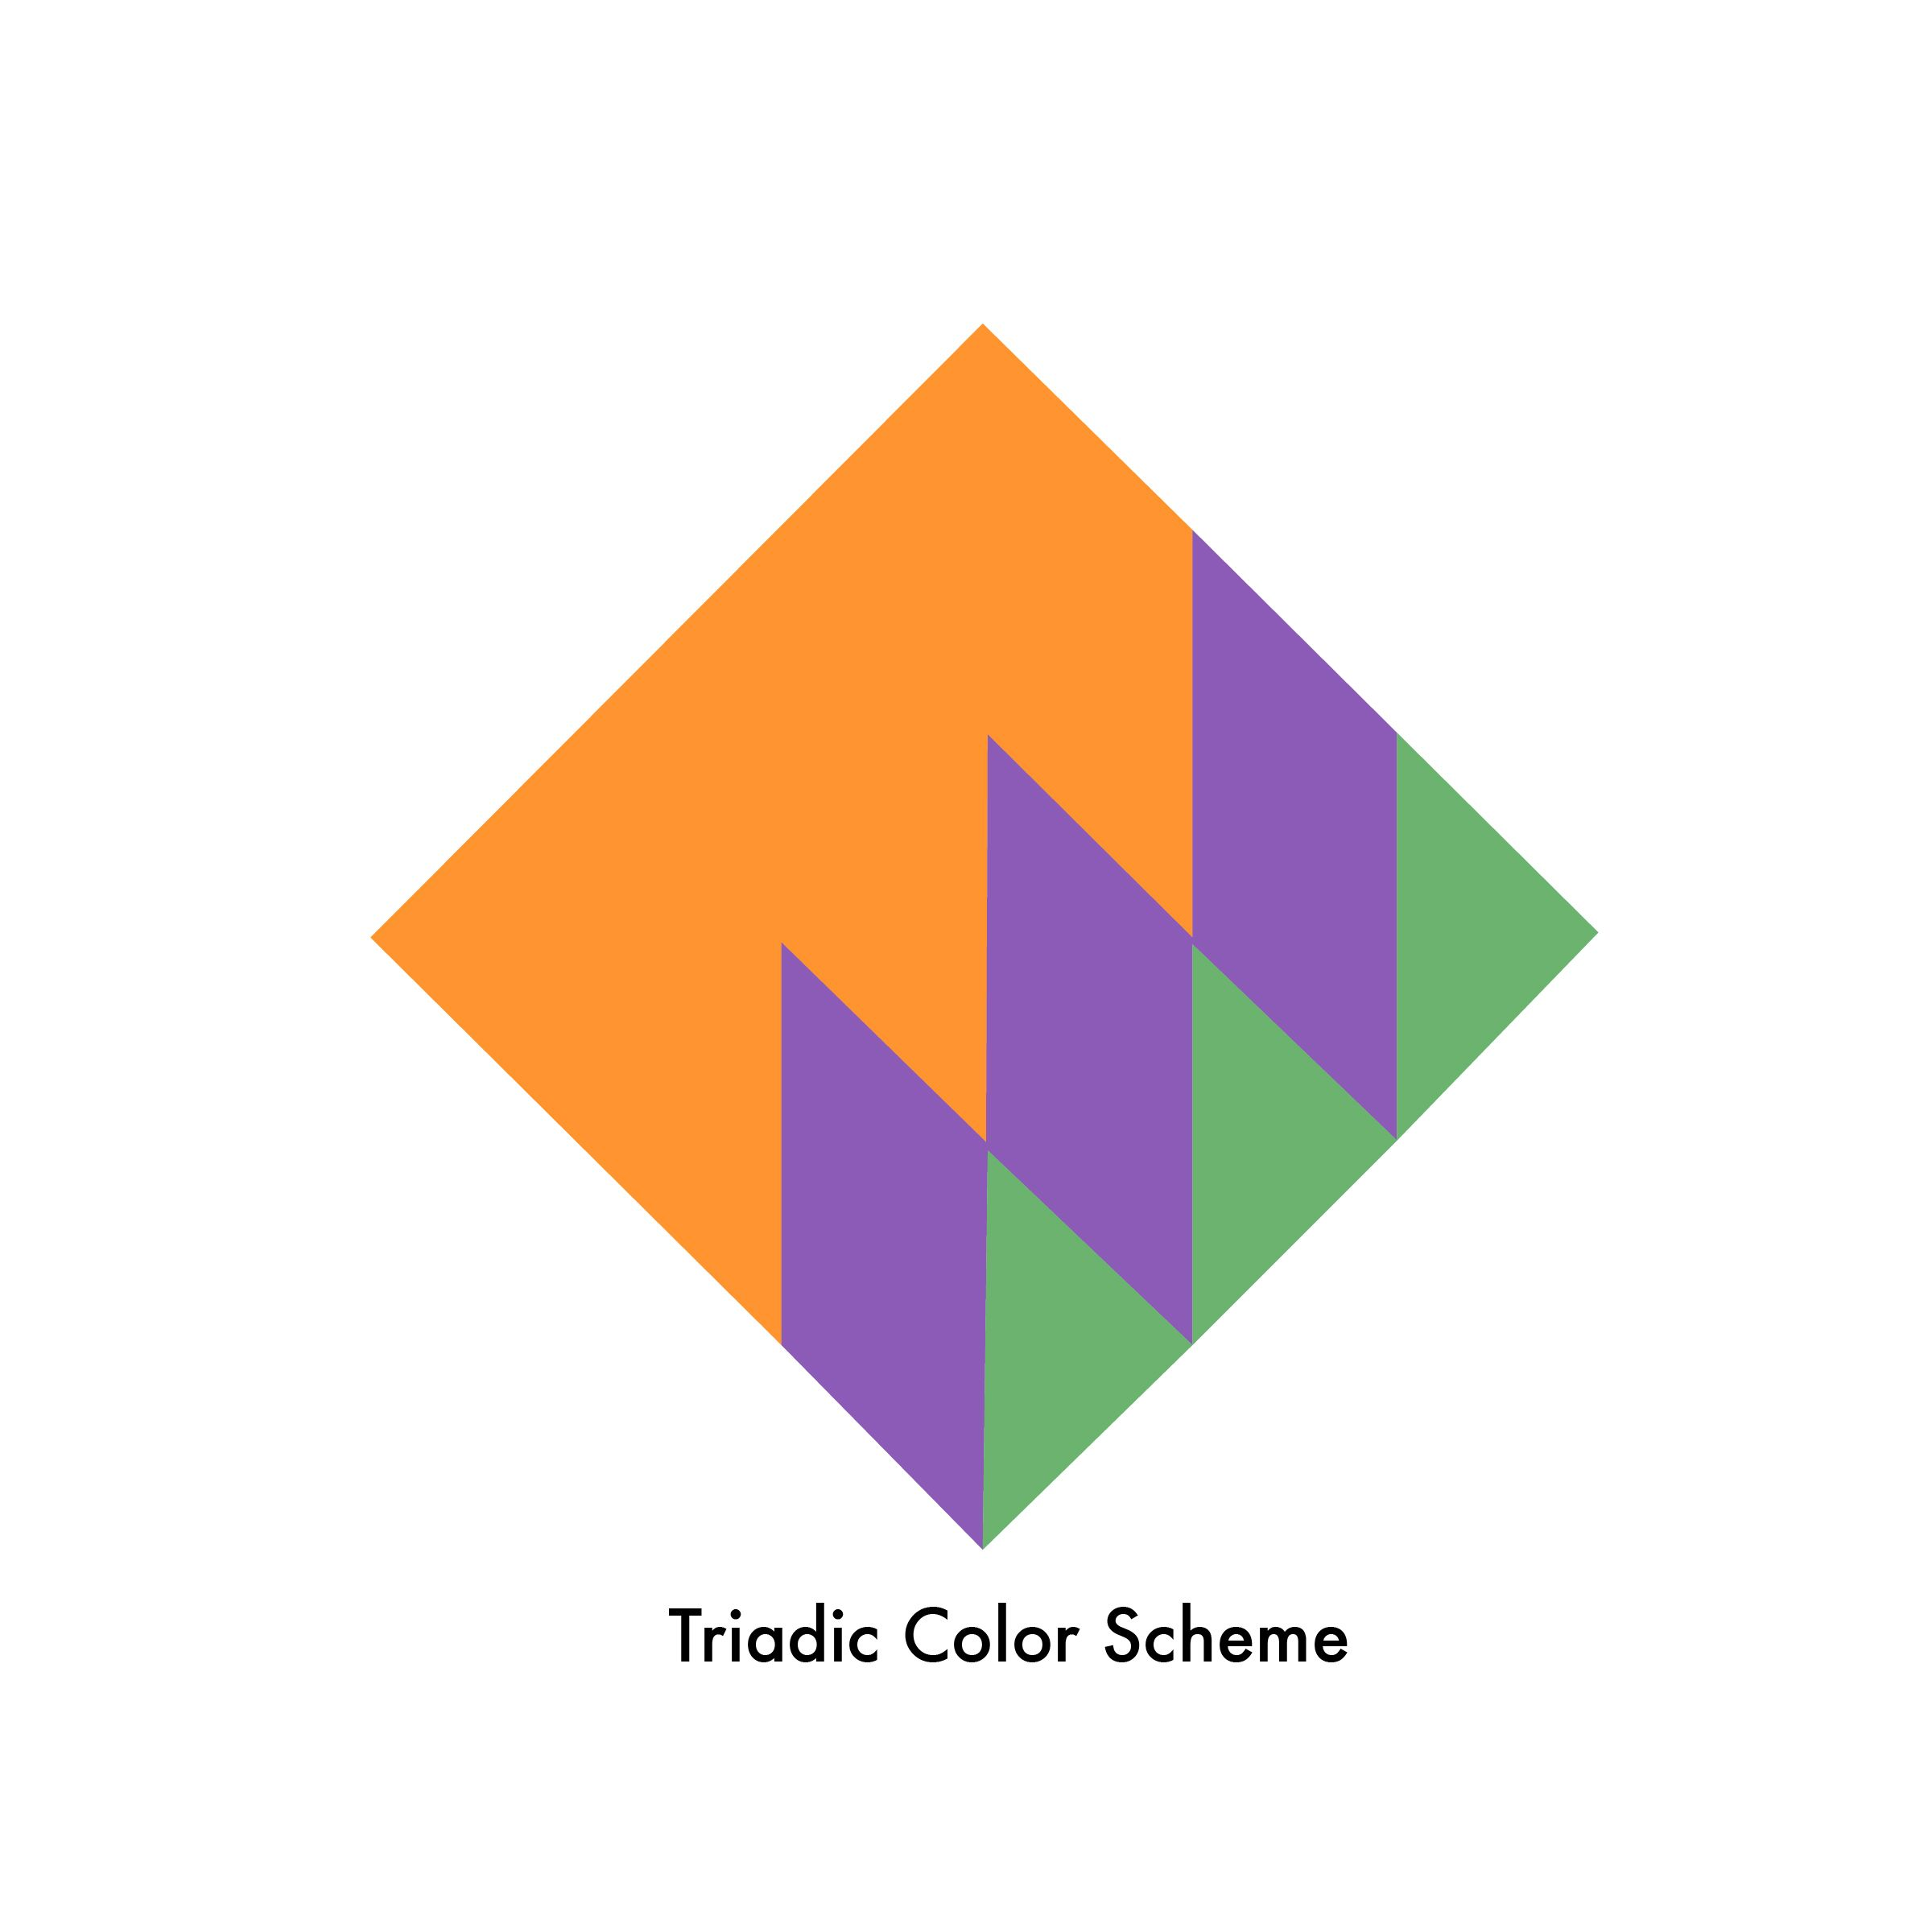 Triadic Color Scheme This Occurs When Colors That Are Evenly